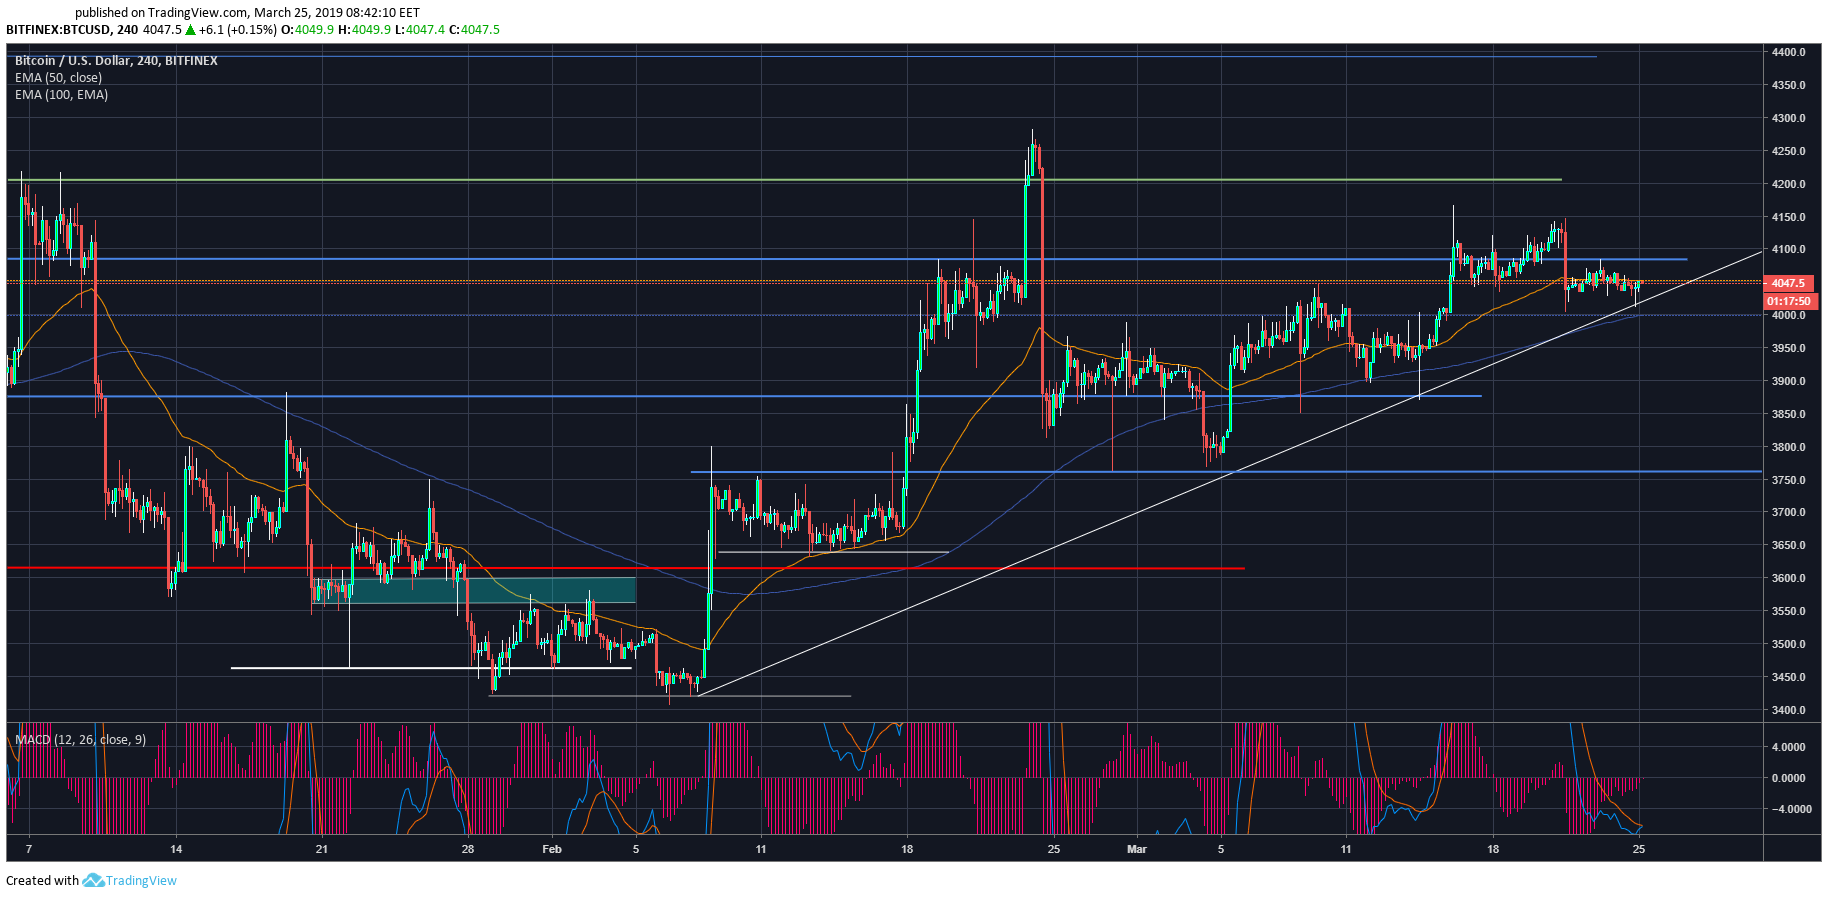 Cryptocurrency market in review: March 25